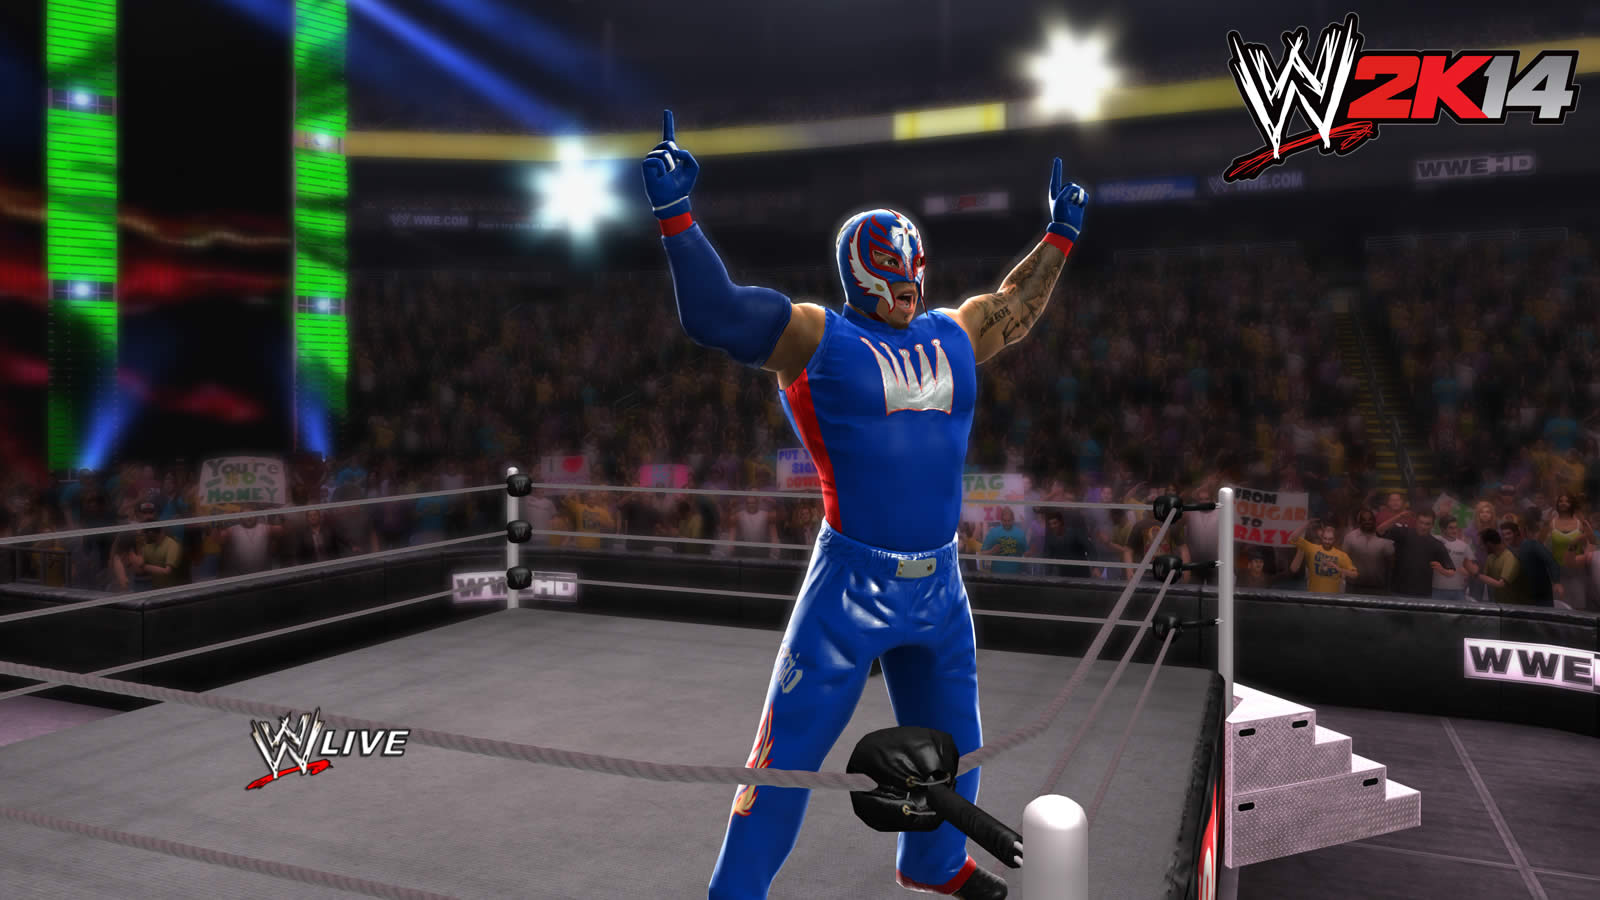 http://downloads.2kgames.com/wwe/site/img/Rey_Mysterio_08202013.jpg